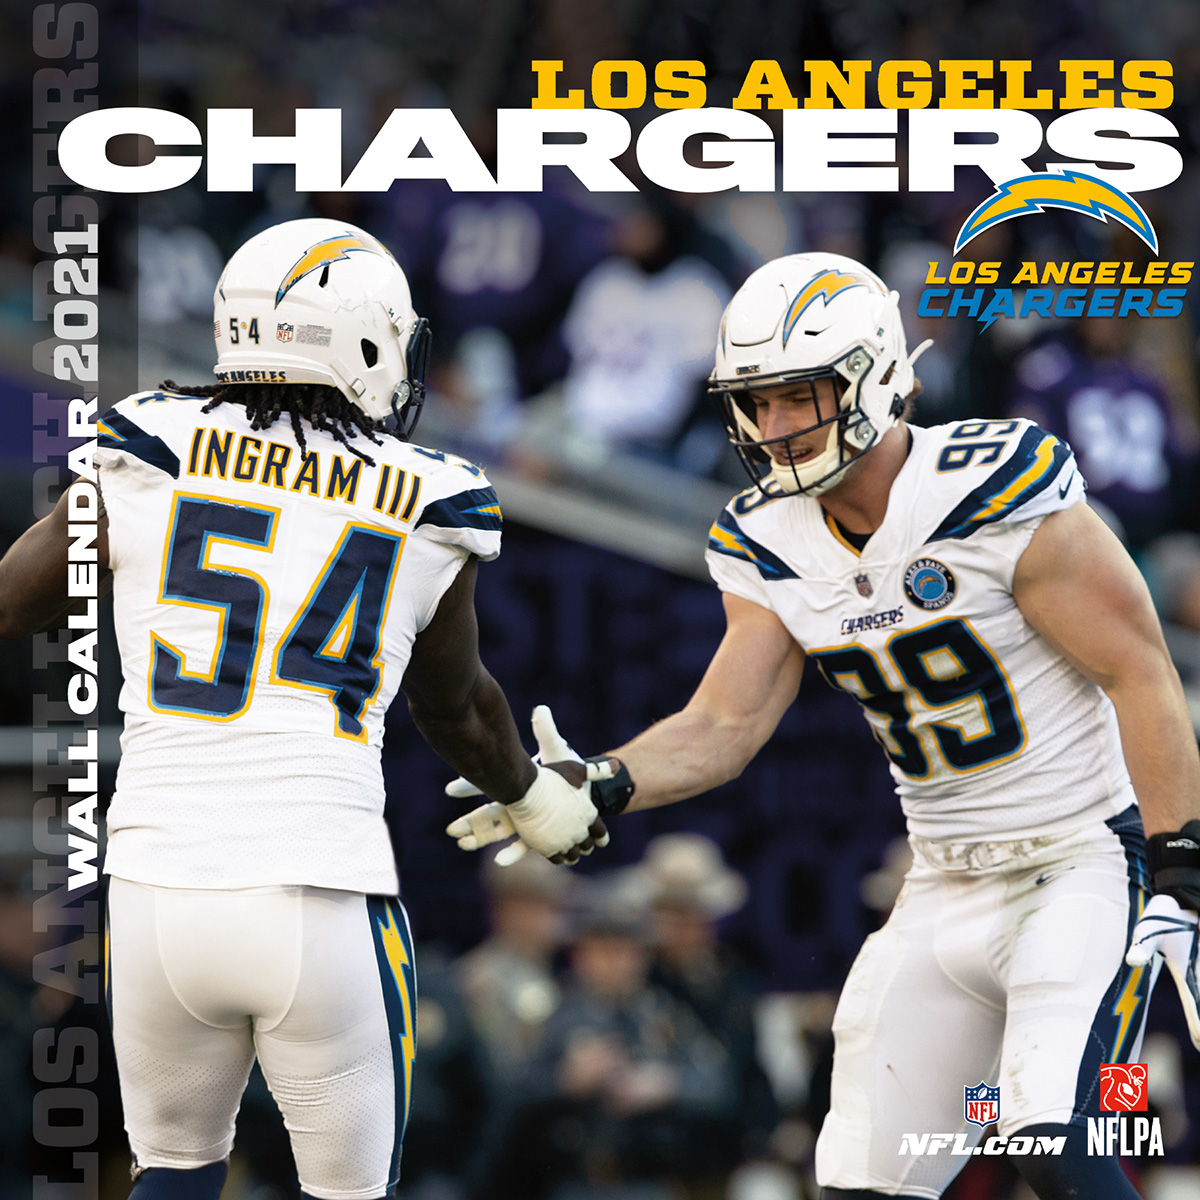 Los Angeles Chargers 2021 NFL Team Wall Calendar